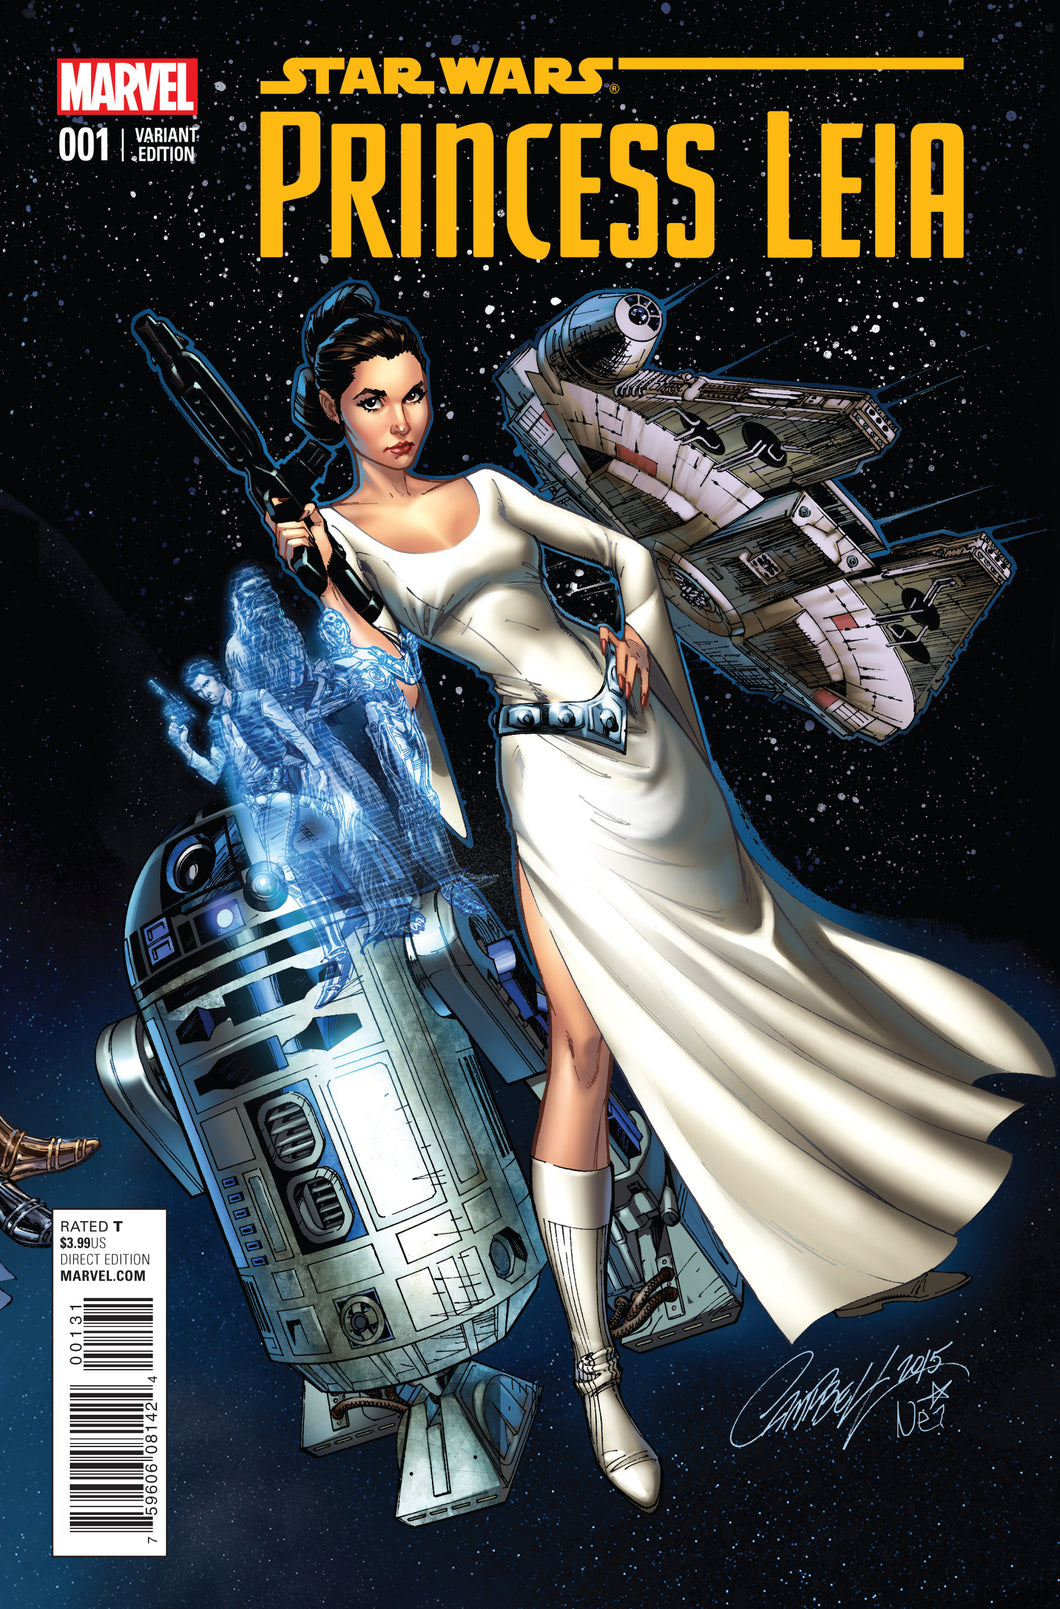 STAR WARS PRINCESS LEIA #1 CAMPBELL 1:50 CONNECTING COVER VARIANT